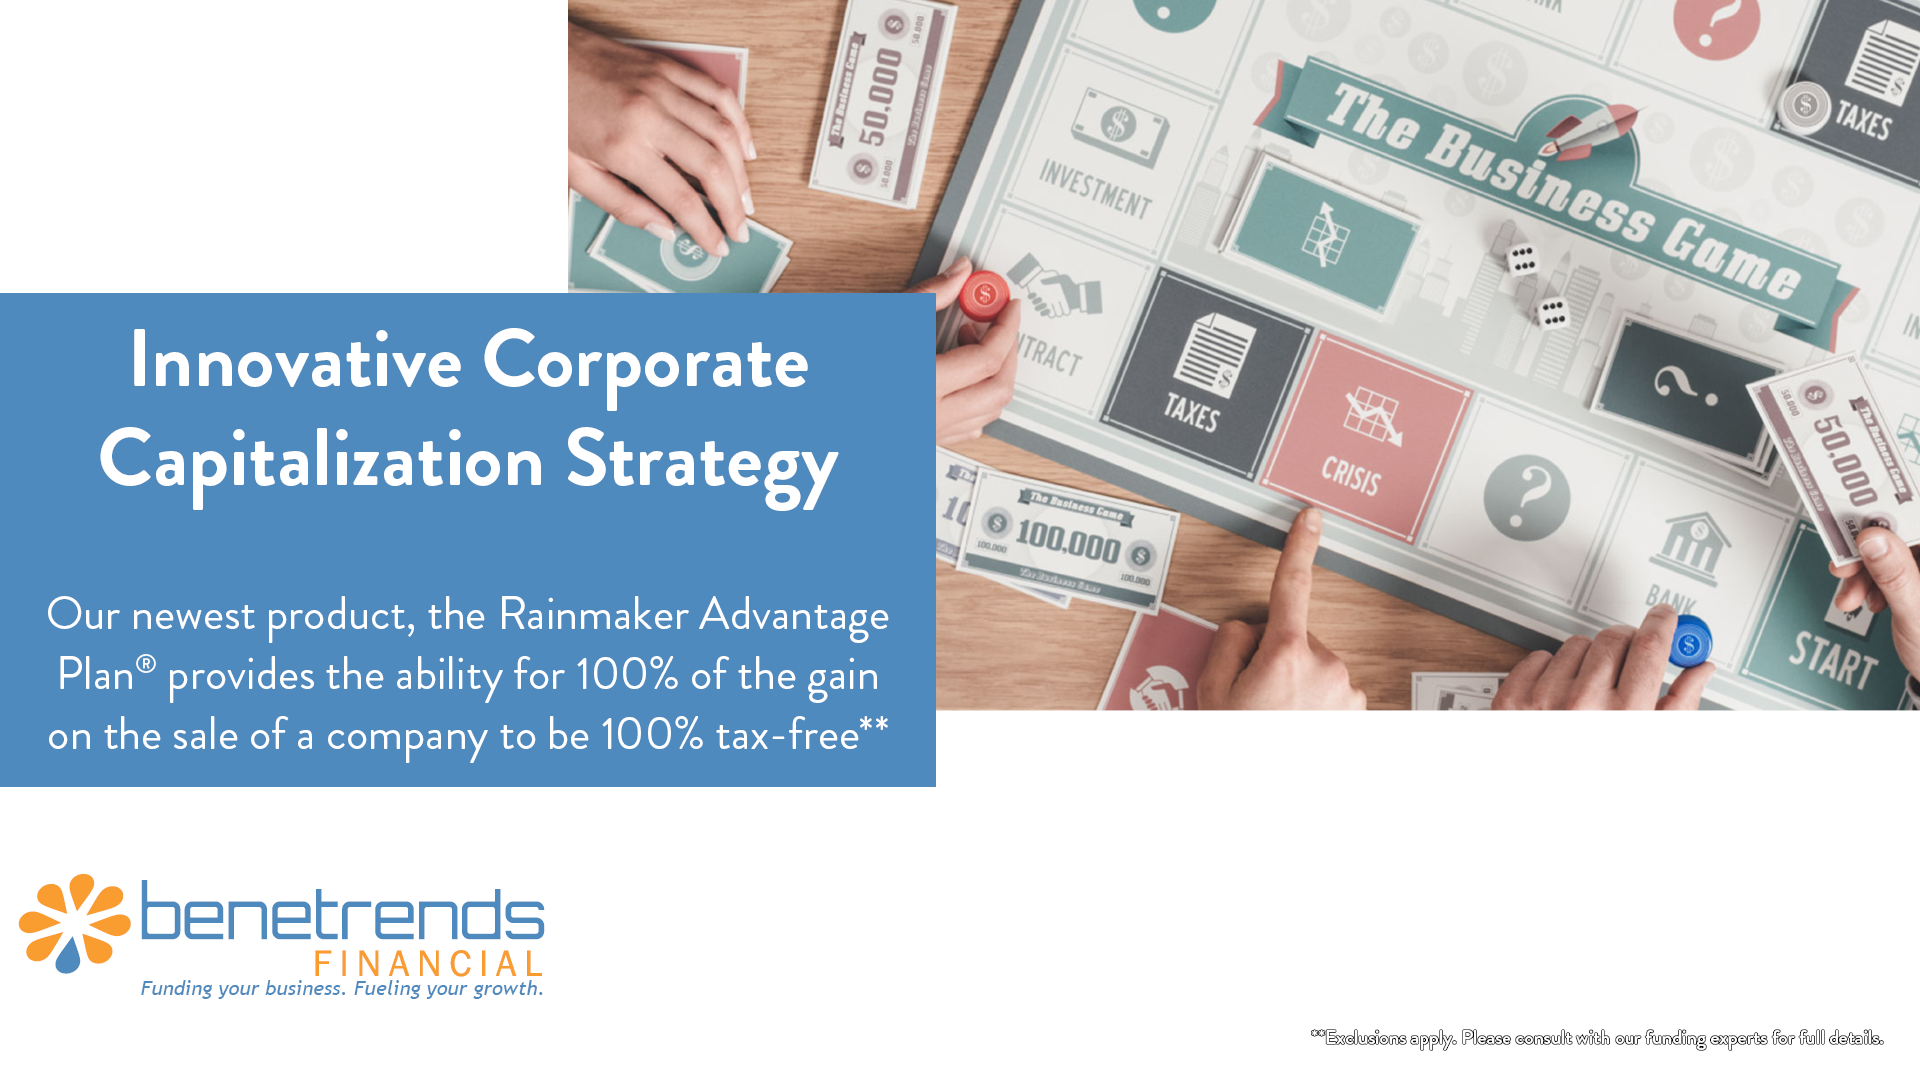 Benetrends Financial Innovative Corporate Capitalization Strategy